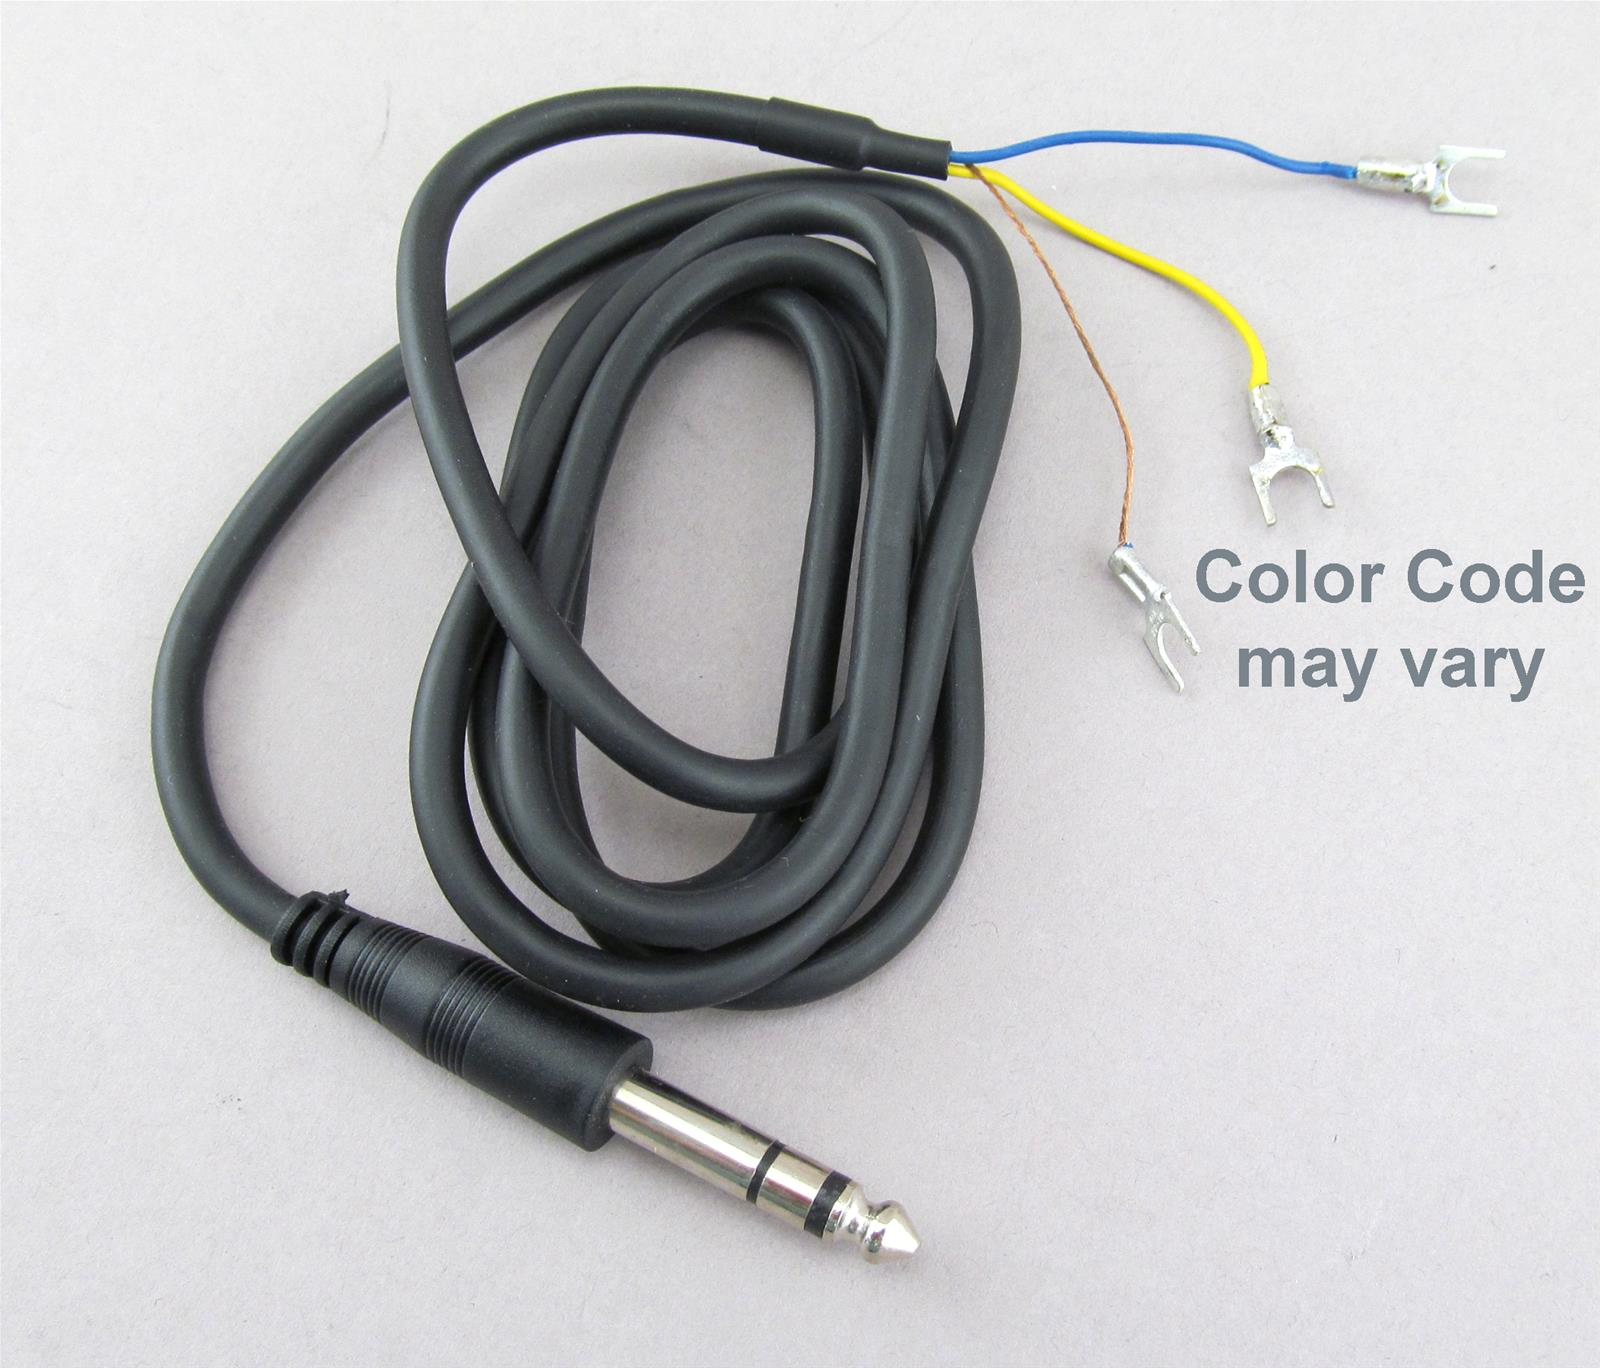 Vibroplex Cable Assemblies CP-3 - Free Shipping on Most Orders Over ...